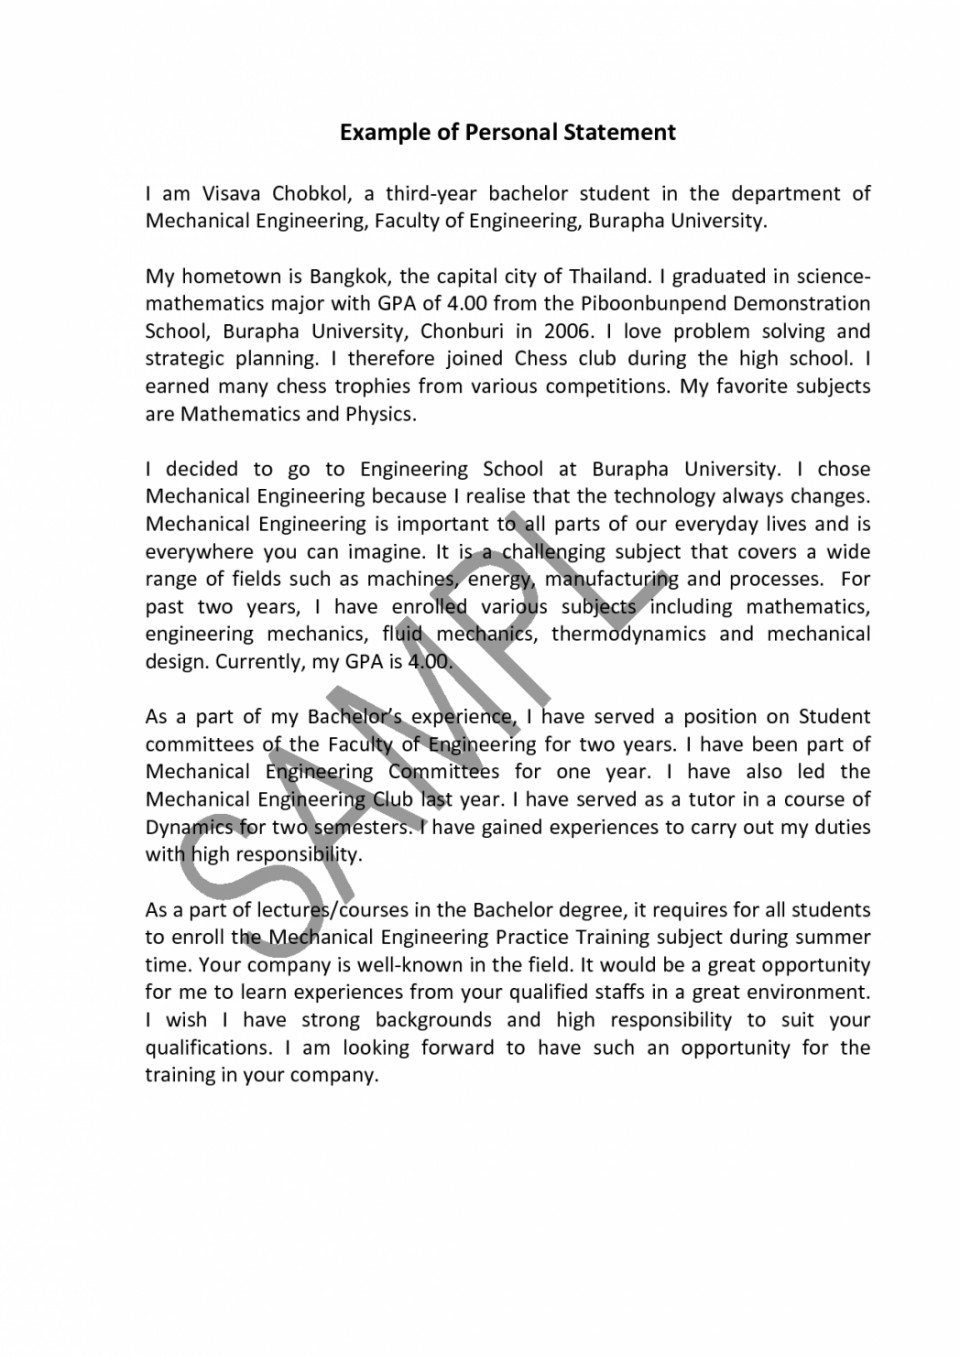 008 Mother Tongue Amy Tan Thesis My Inspiration Essay Mechanical Engineering Personal Statement Rwb University Of Michiganes Supplemente 1048x1482 Wondrous Questions Analysis Summary 960